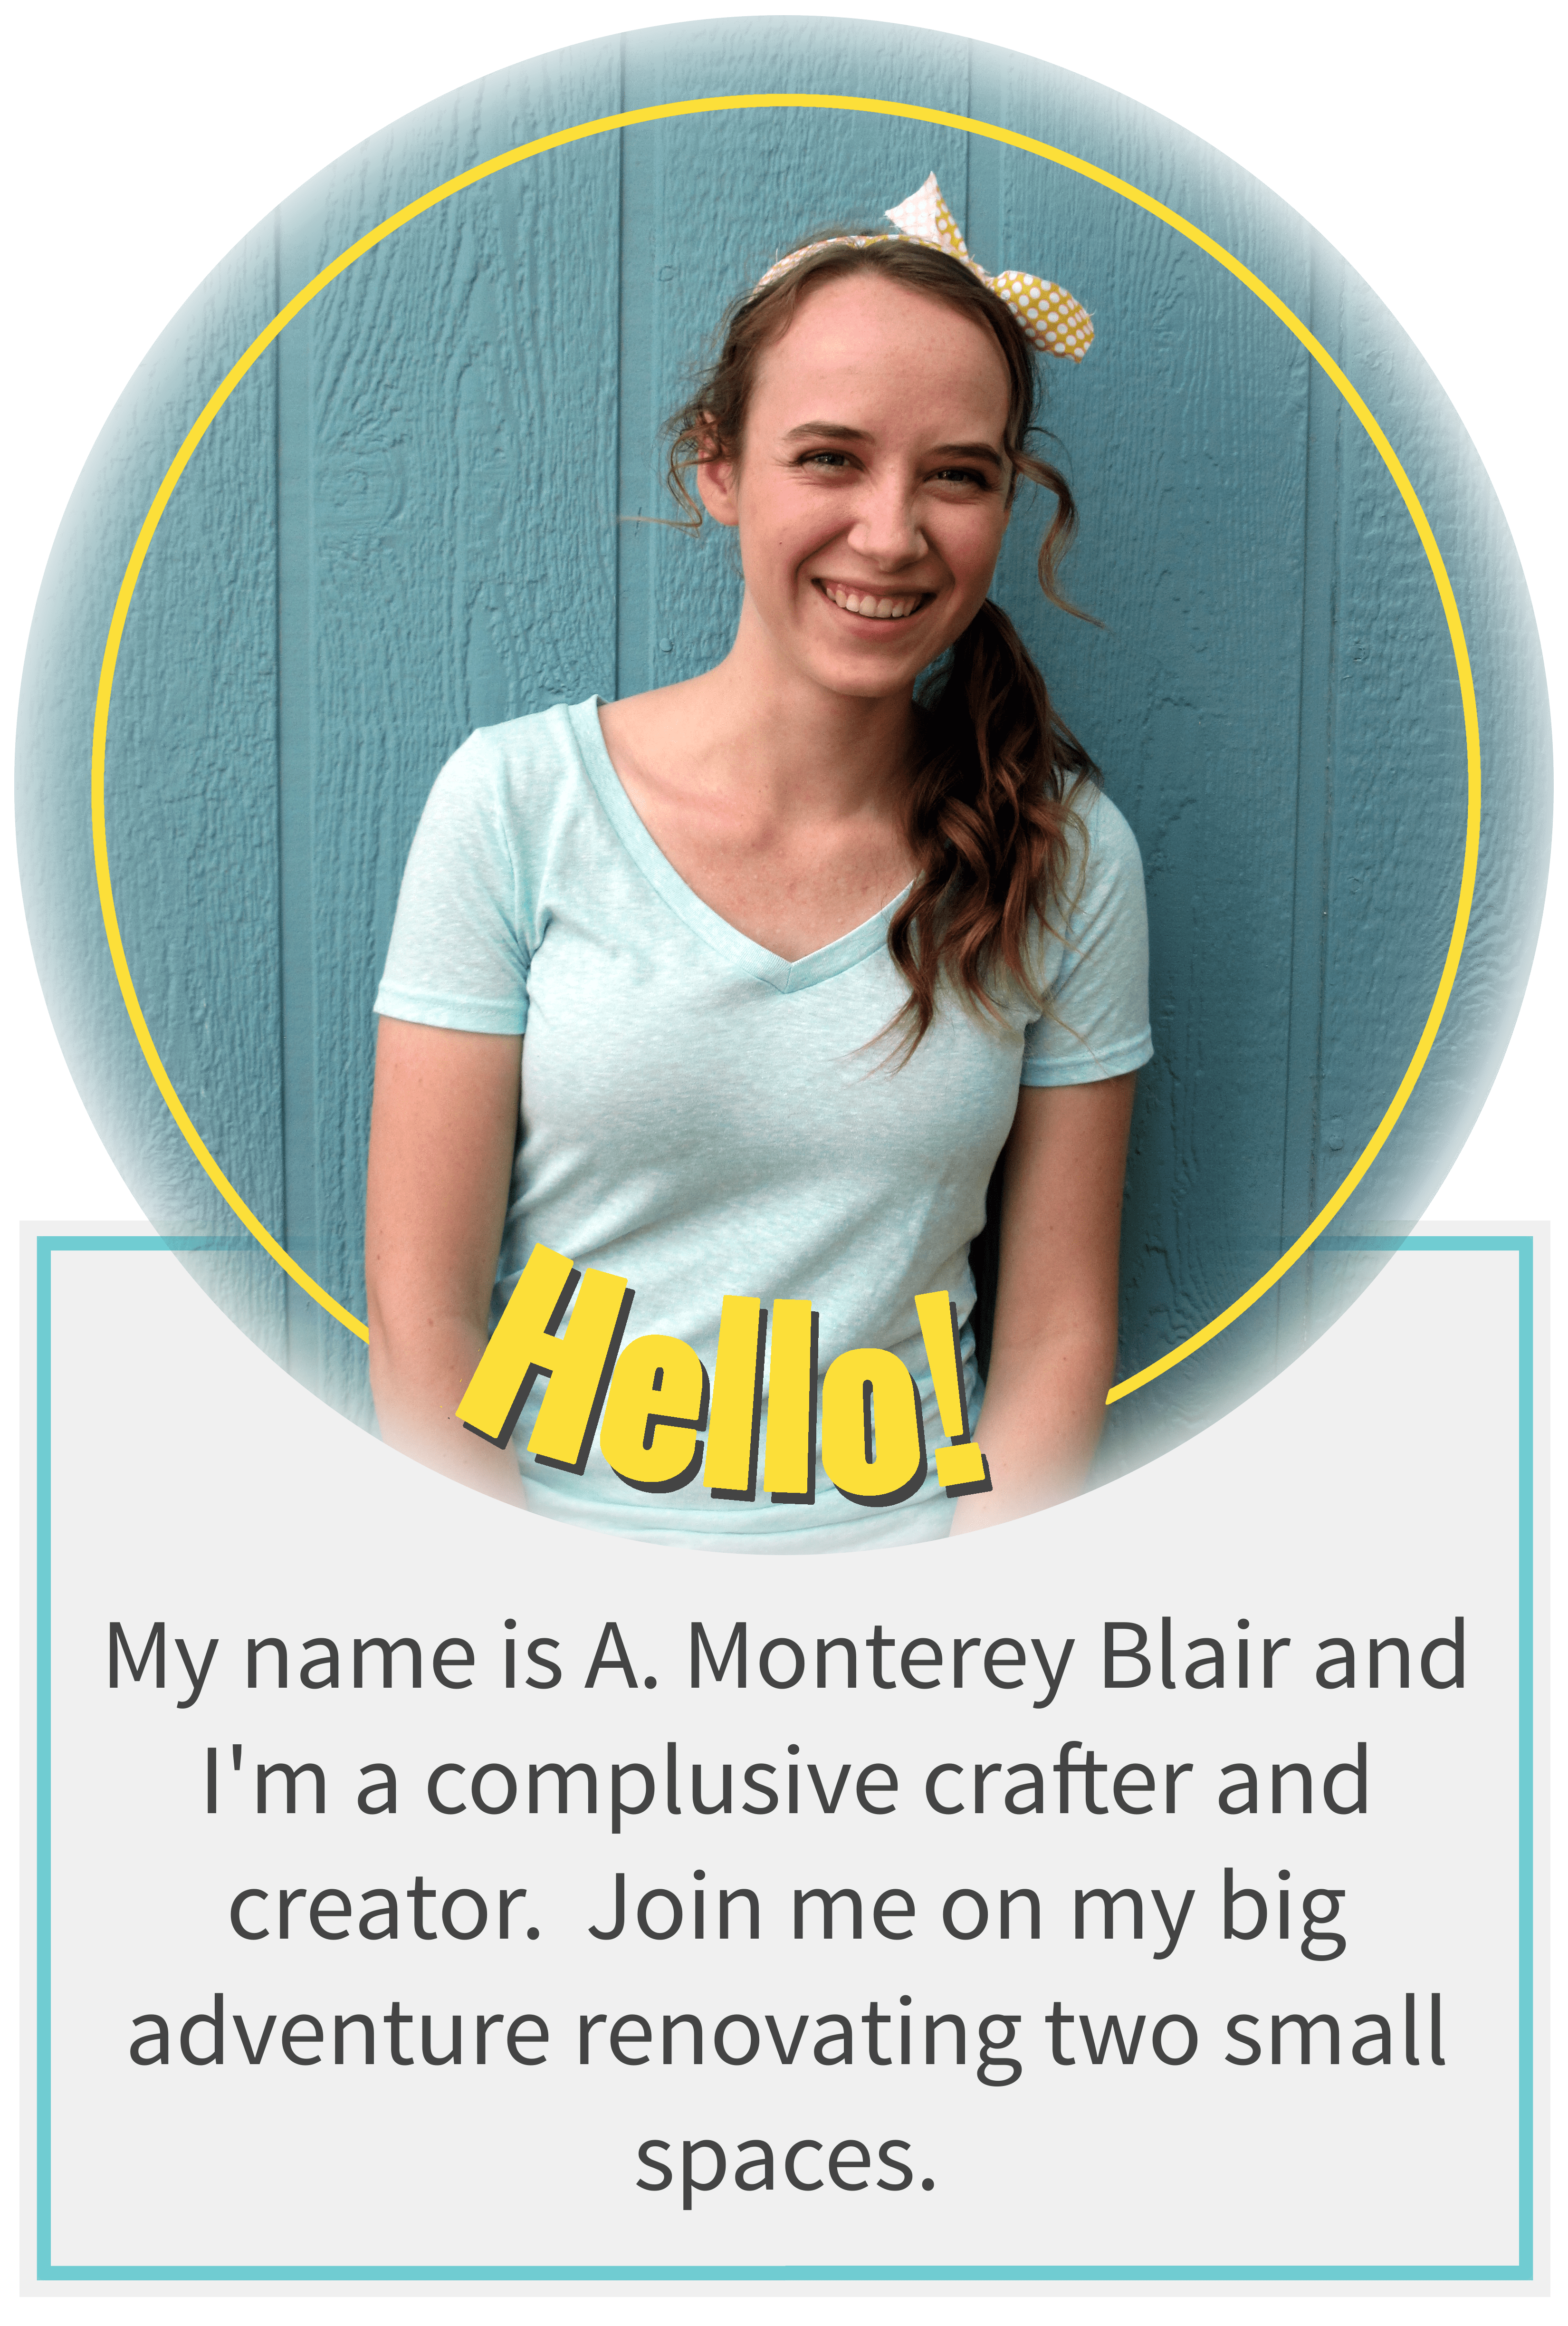 Hello! My name is A. Monterey Blair and I'm a complusive crafter and creator. Join me on my big adventure renovating two small spaces.